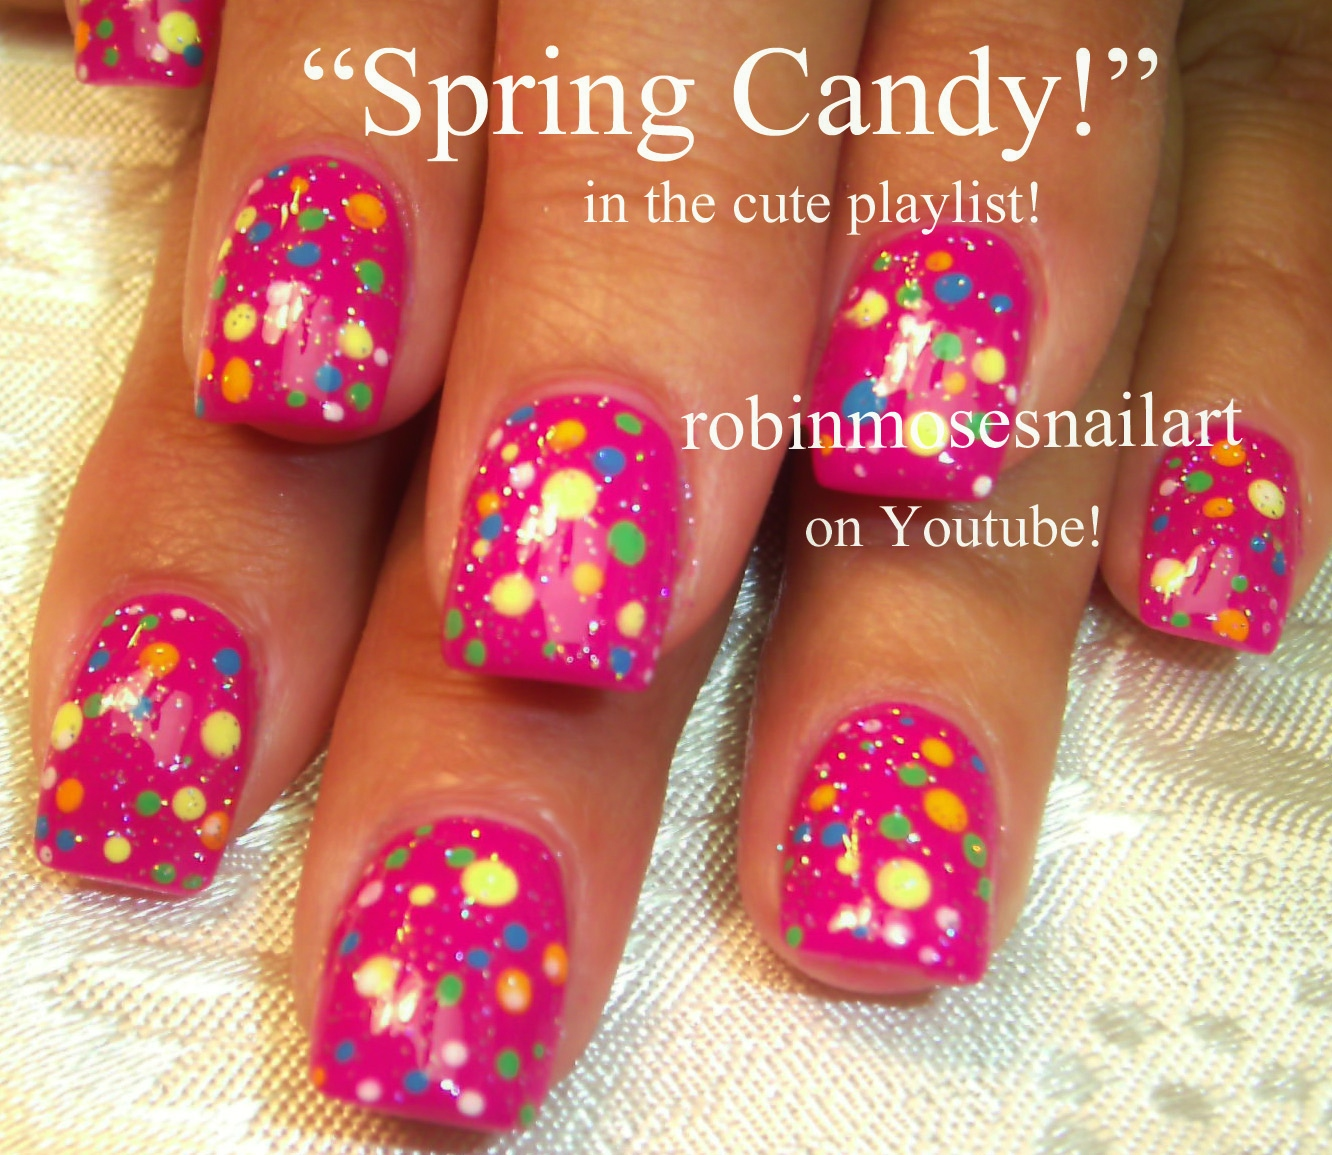 Robin moses nail art cutest nails ever easy cutest nails polka cutest nails ever easy cutest nails polka dot nails simple candy dots nail art prinsesfo Gallery